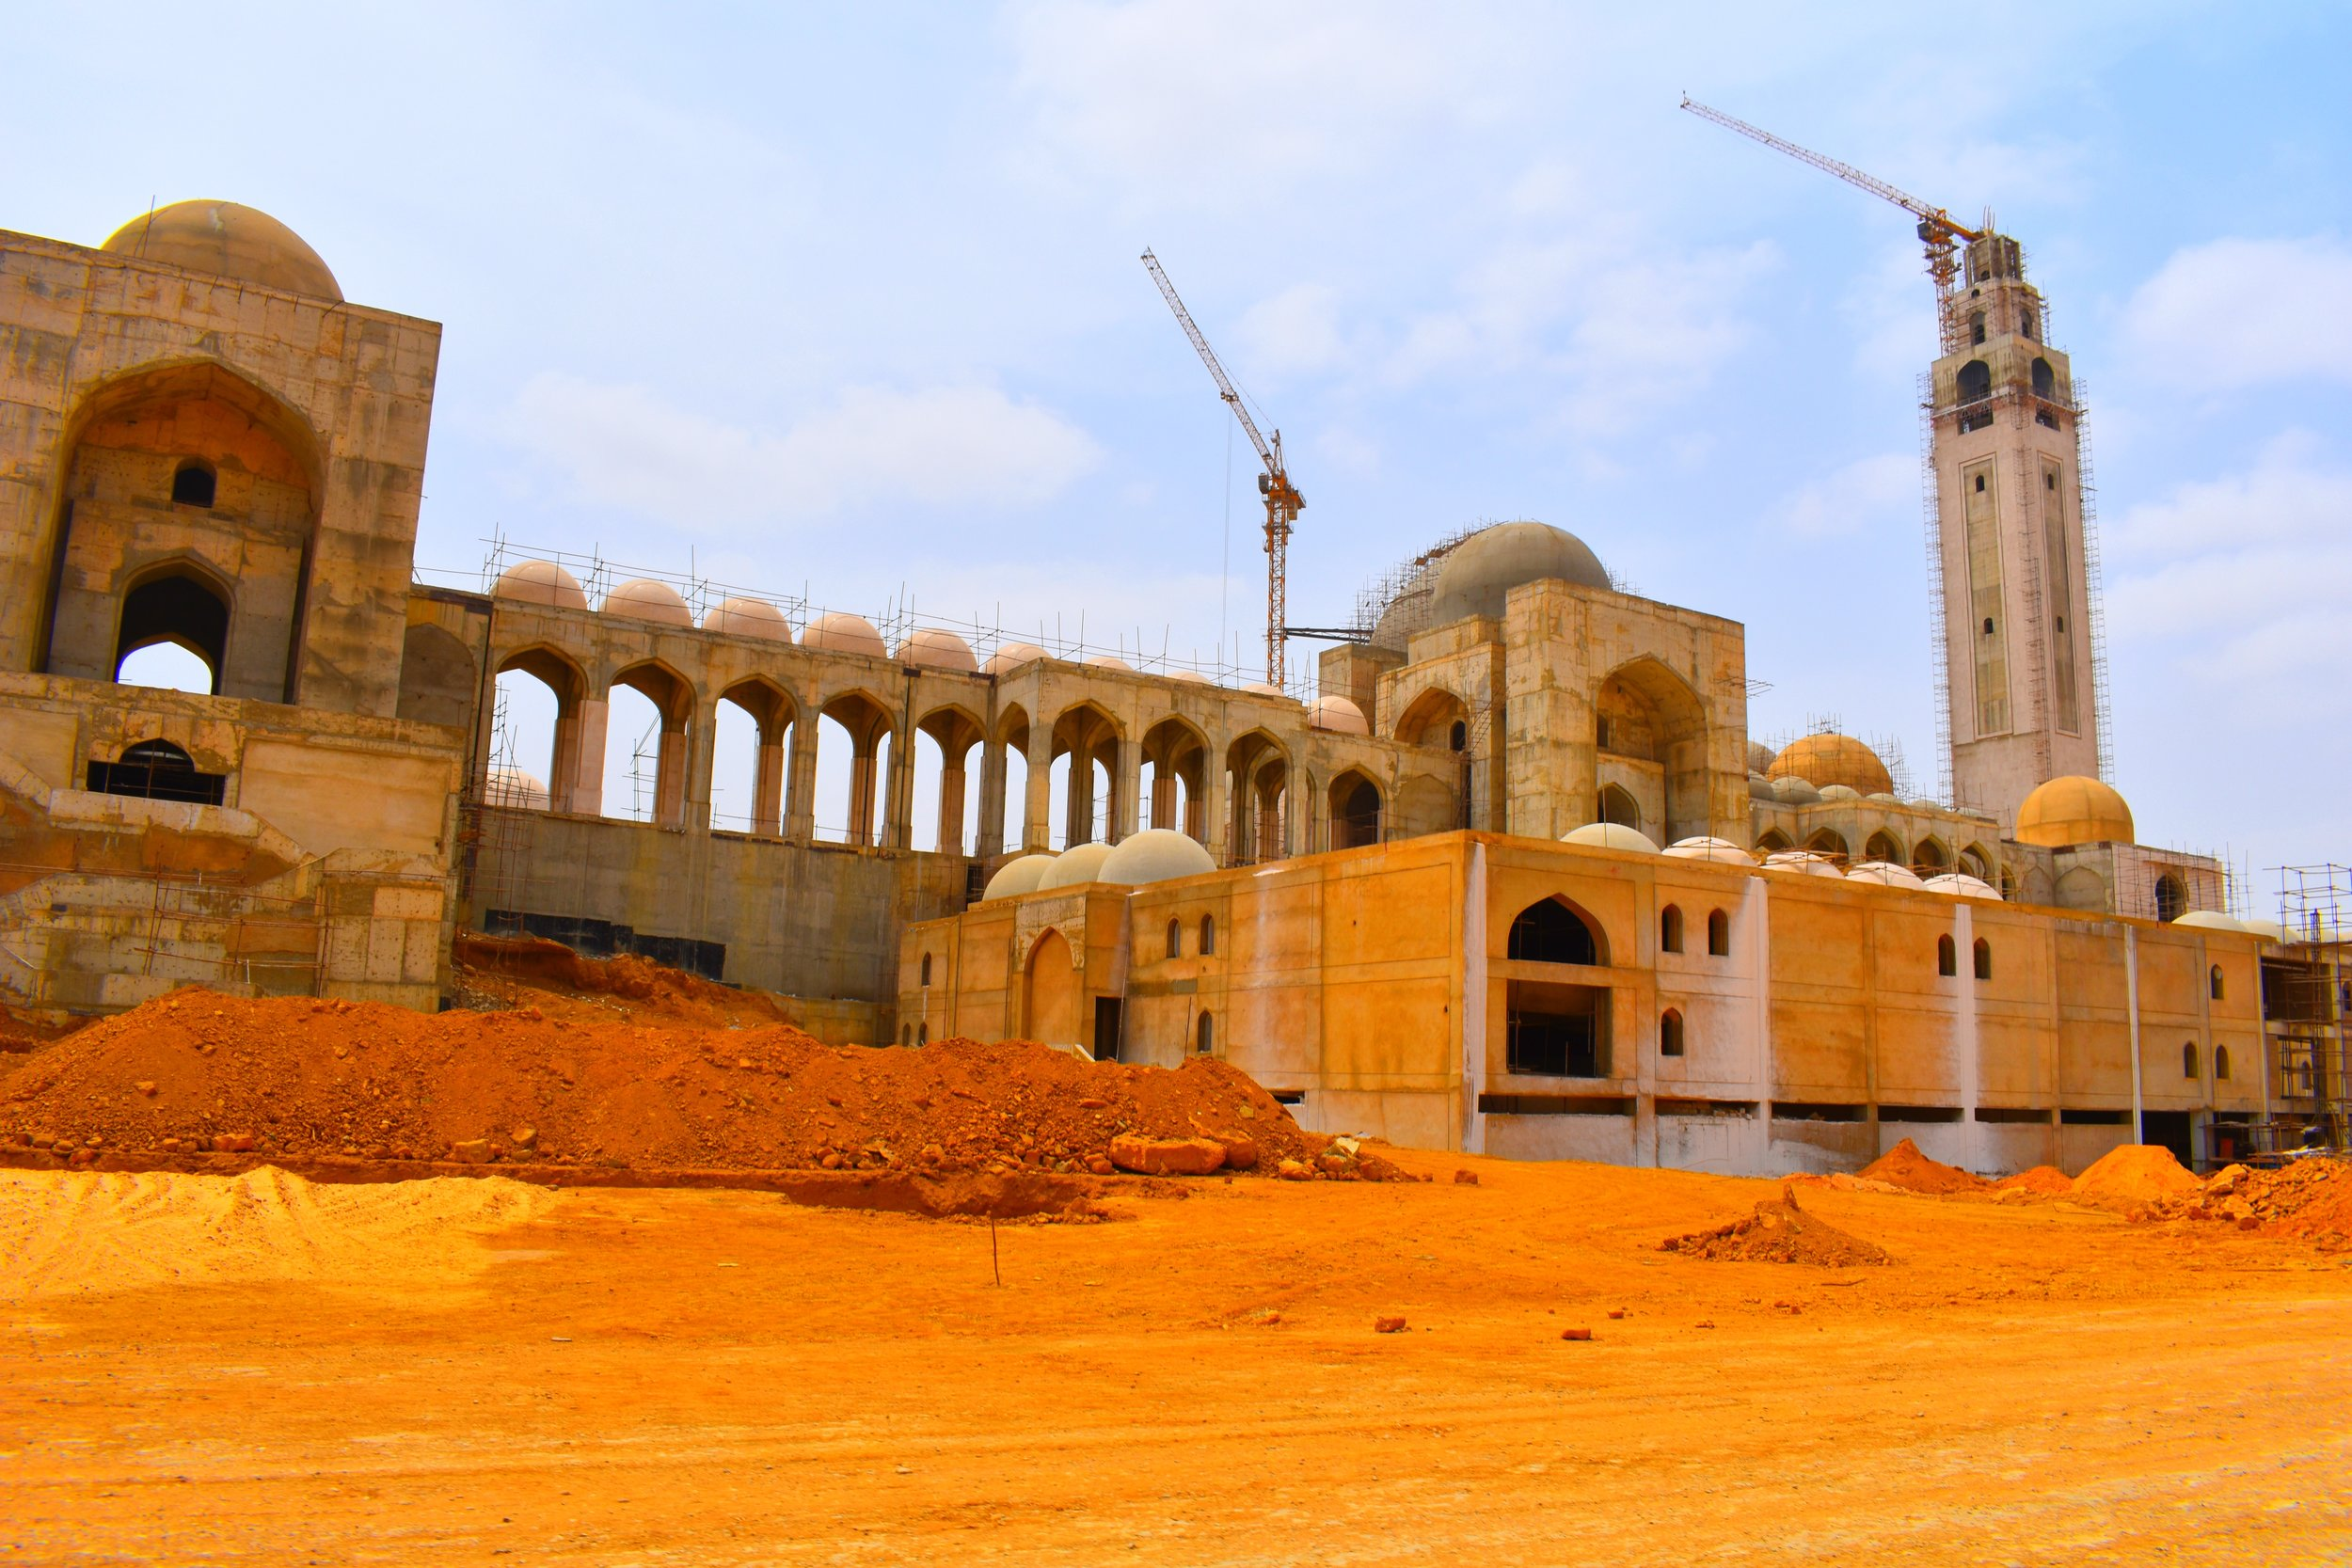 A massive mosque under construction in Bahria Town, Pakistan.